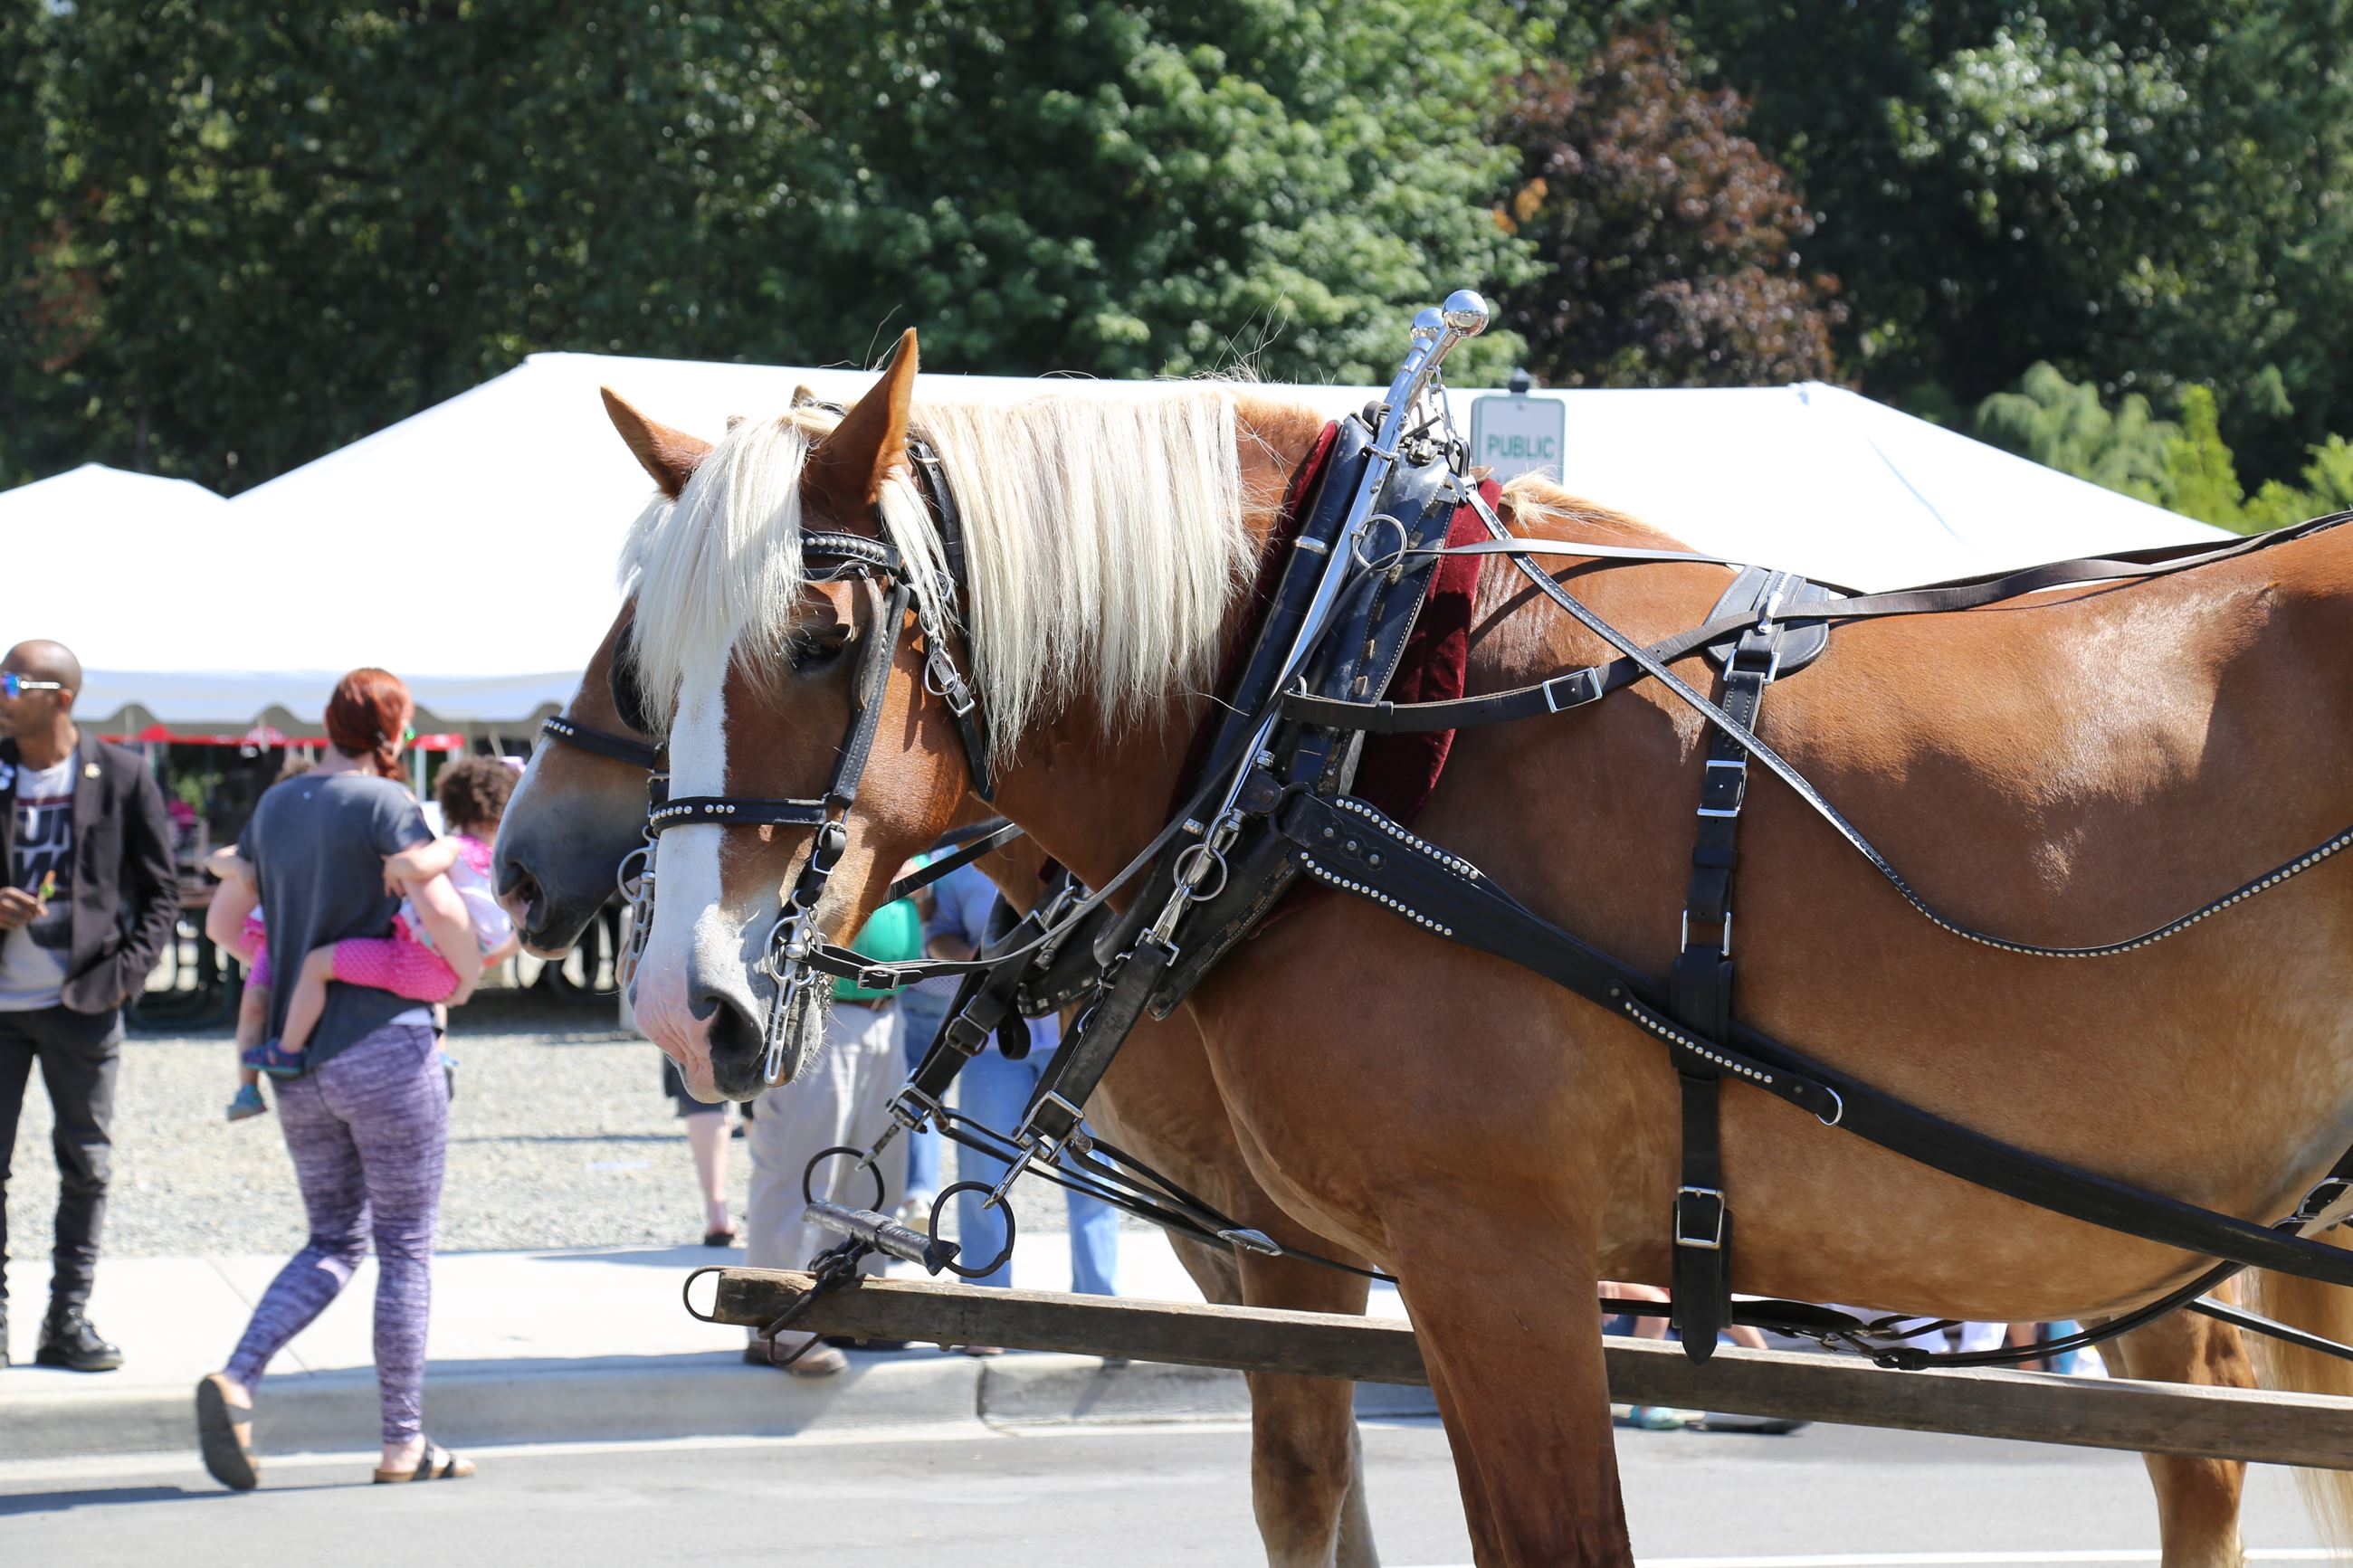 Horses from the Carmichaels Float